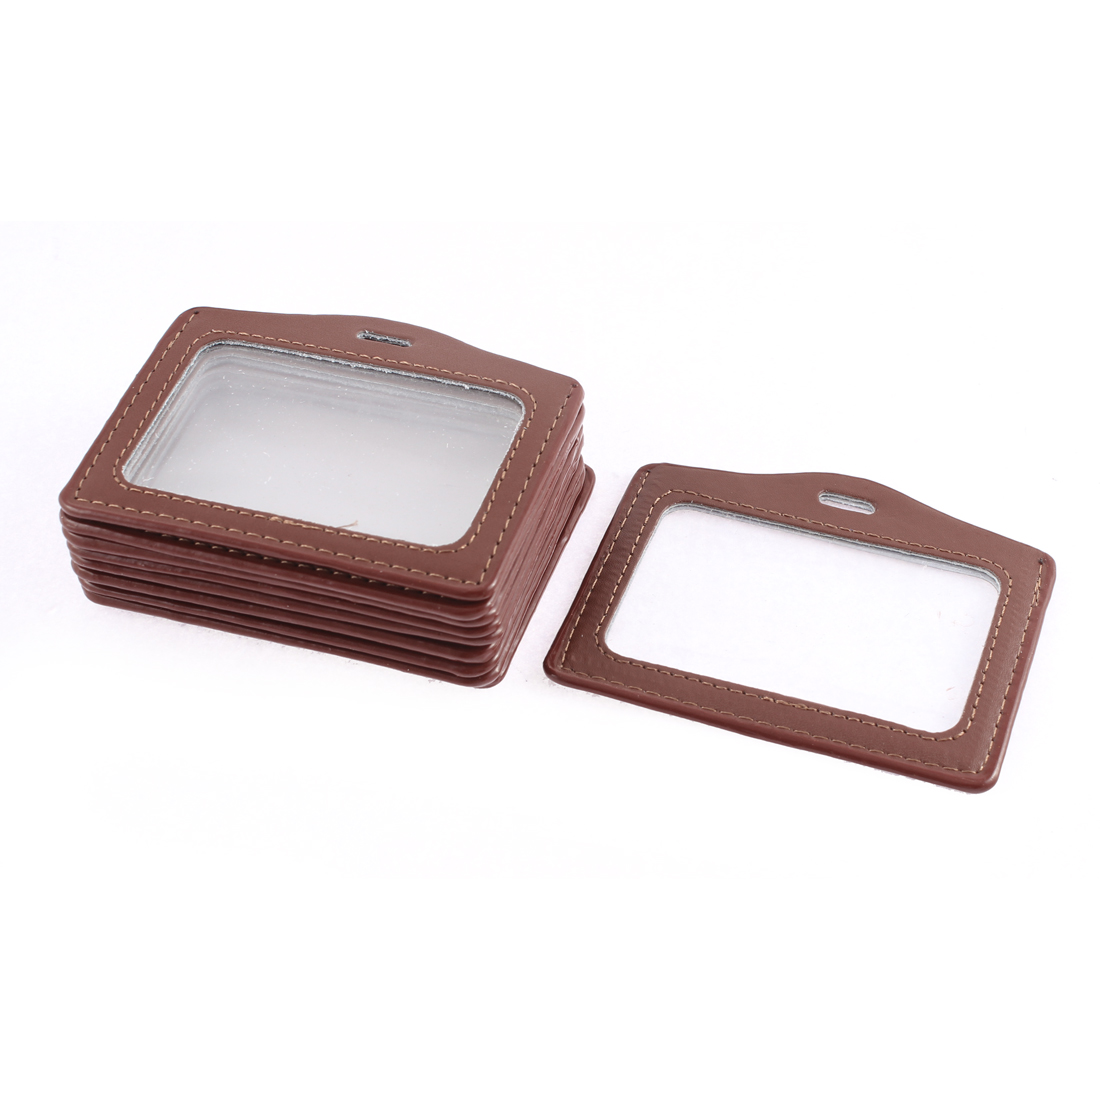 Office School Horizontal Business ID Card Badge Holder Brown 10 Pcs